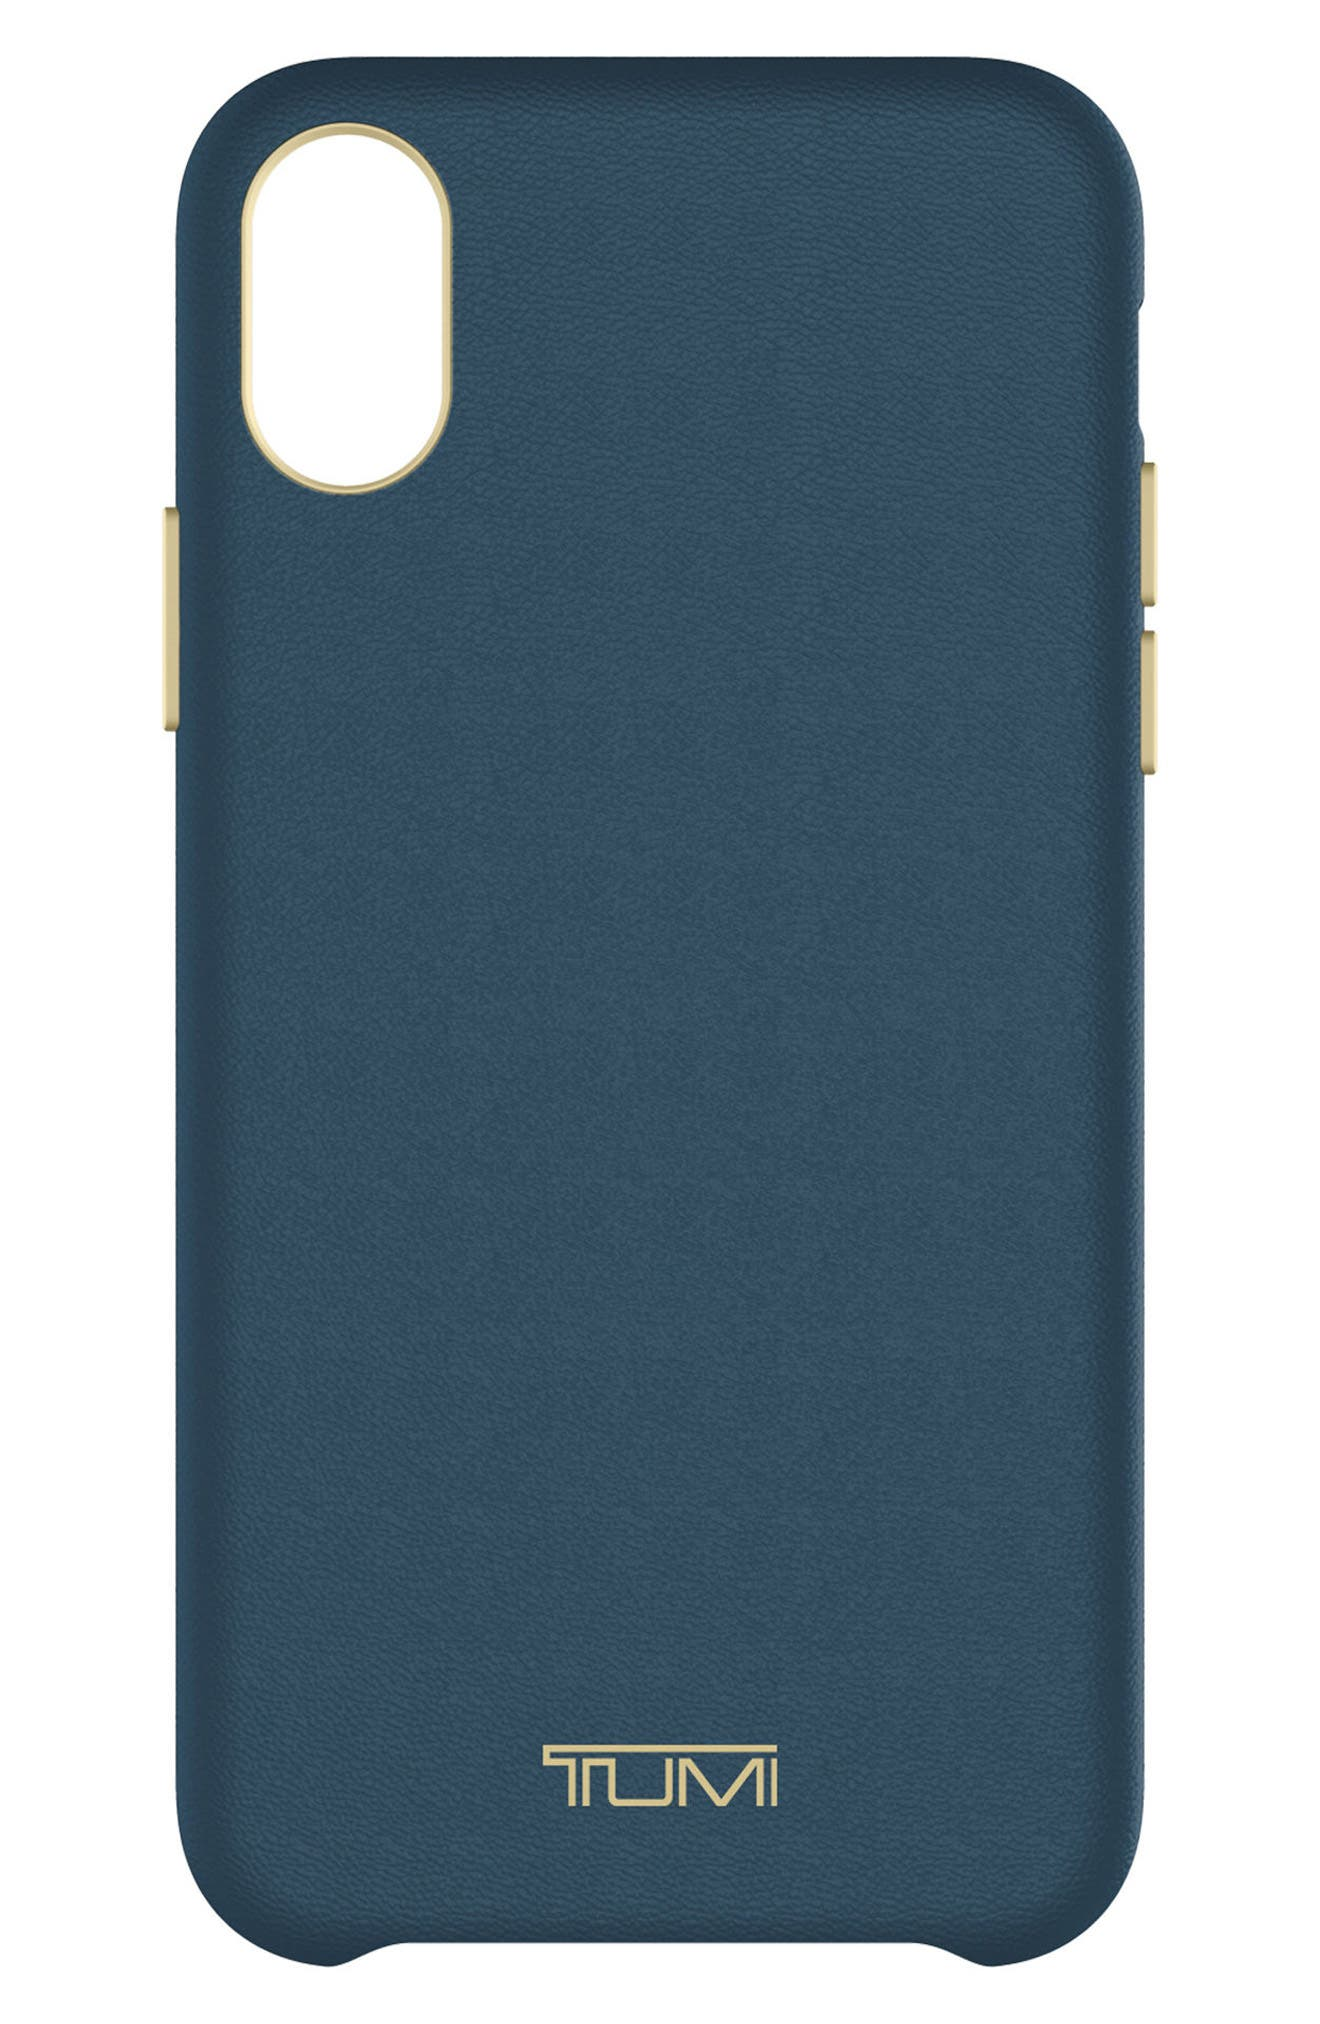 Tumi Leather iPhone X Case